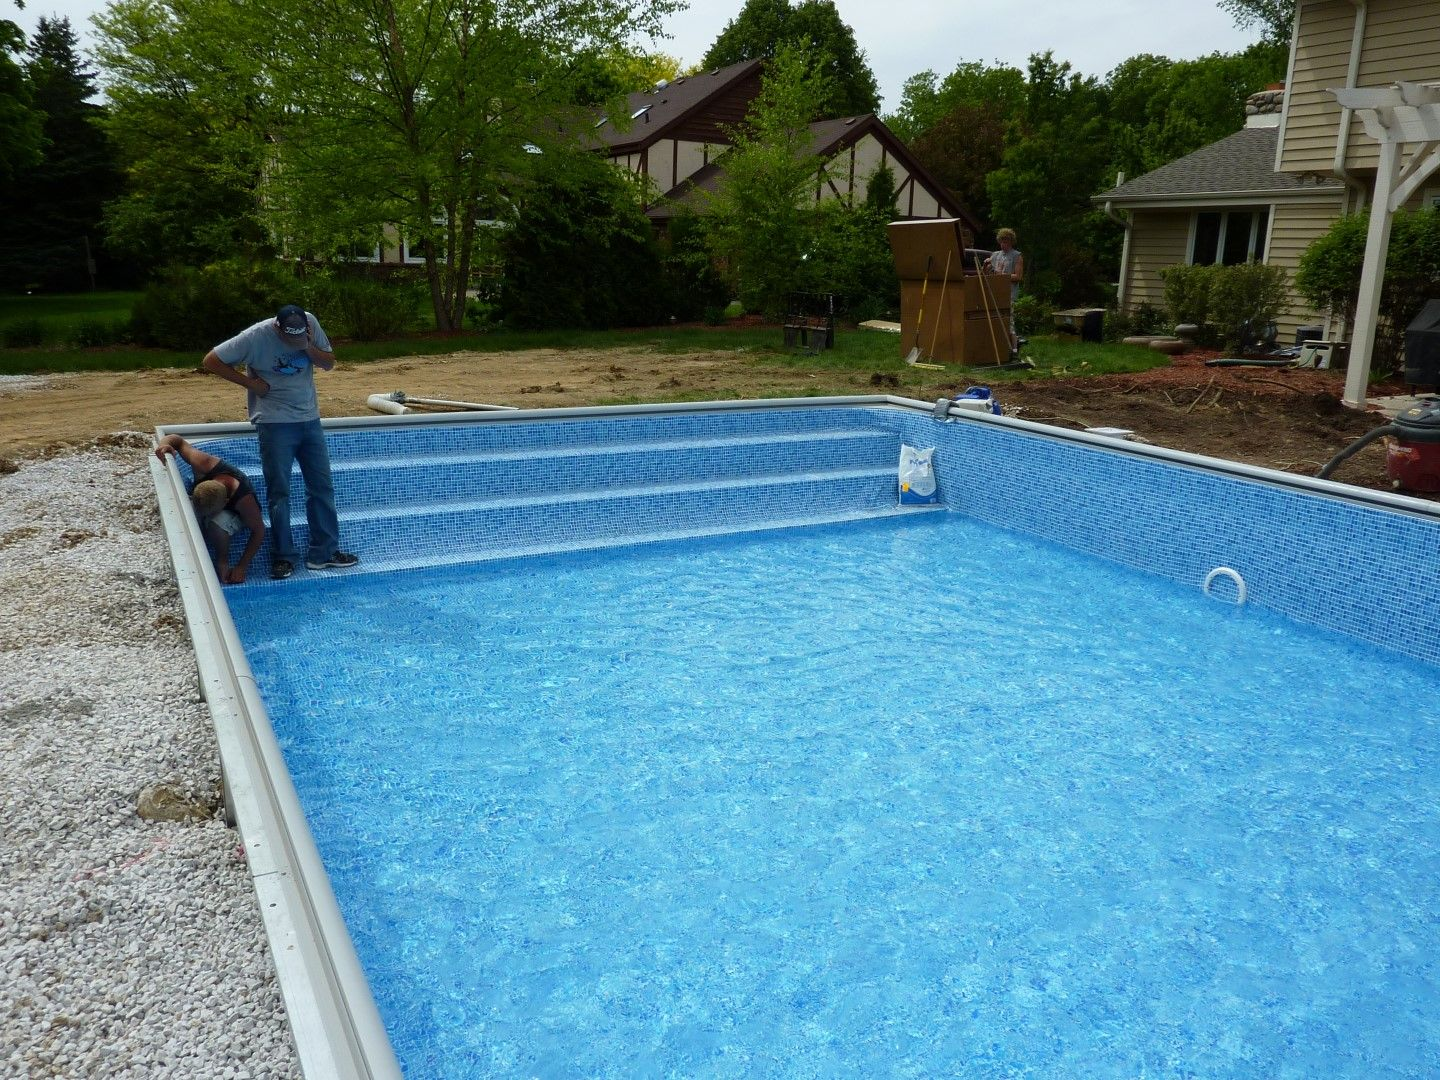 Fiberglass Swimming Pool Kits Fiberglass Pool Steps Swimming